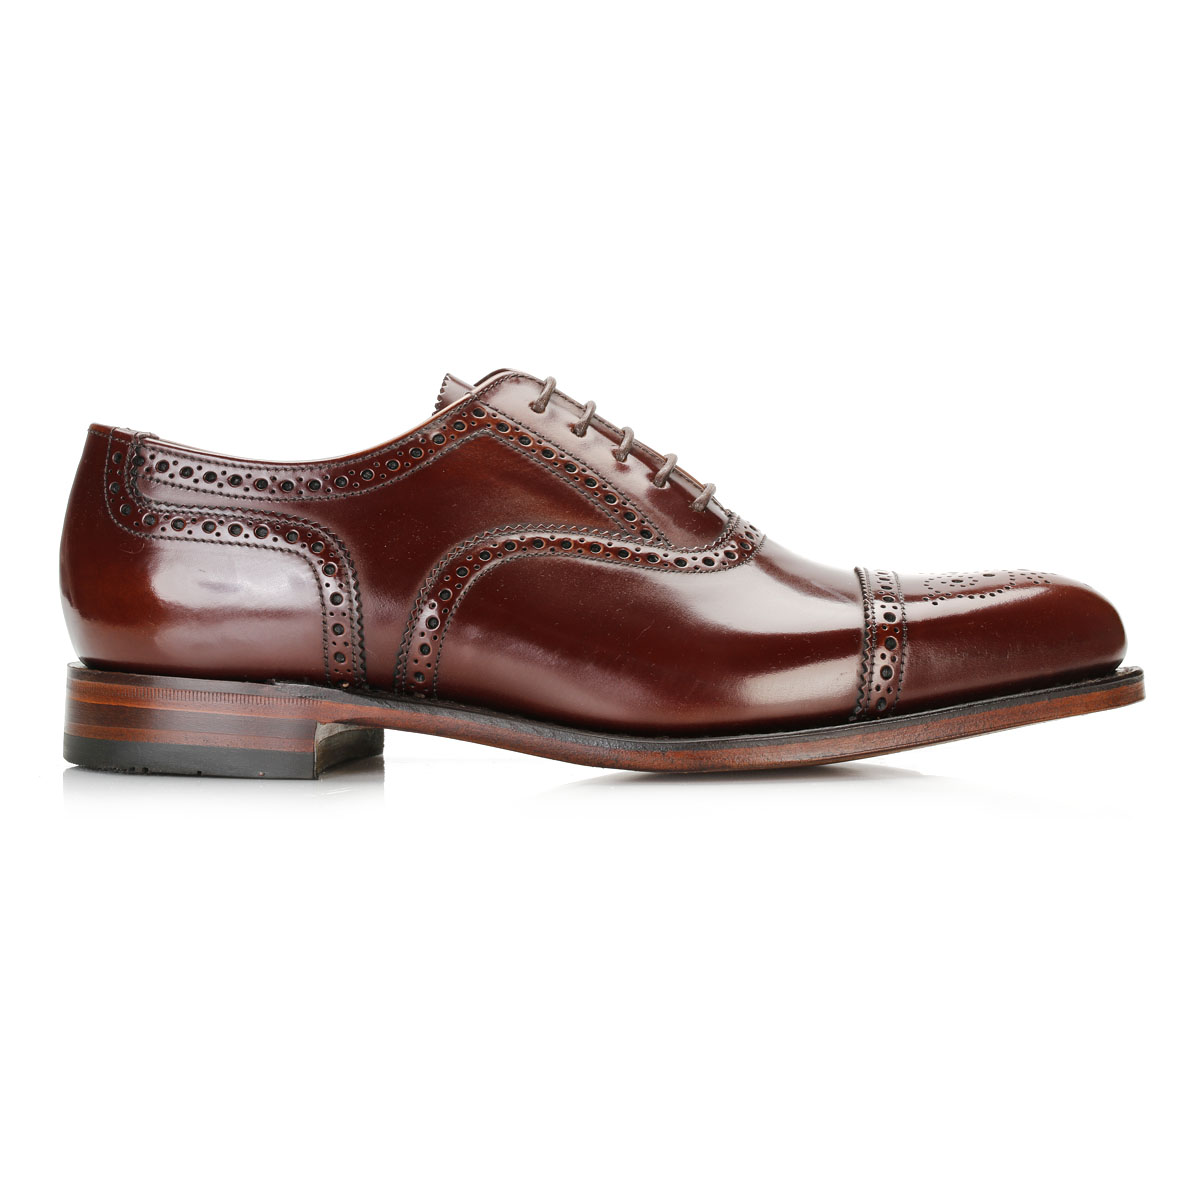 Vintage Brown Leather Lace Up Brogues Church S Shoes